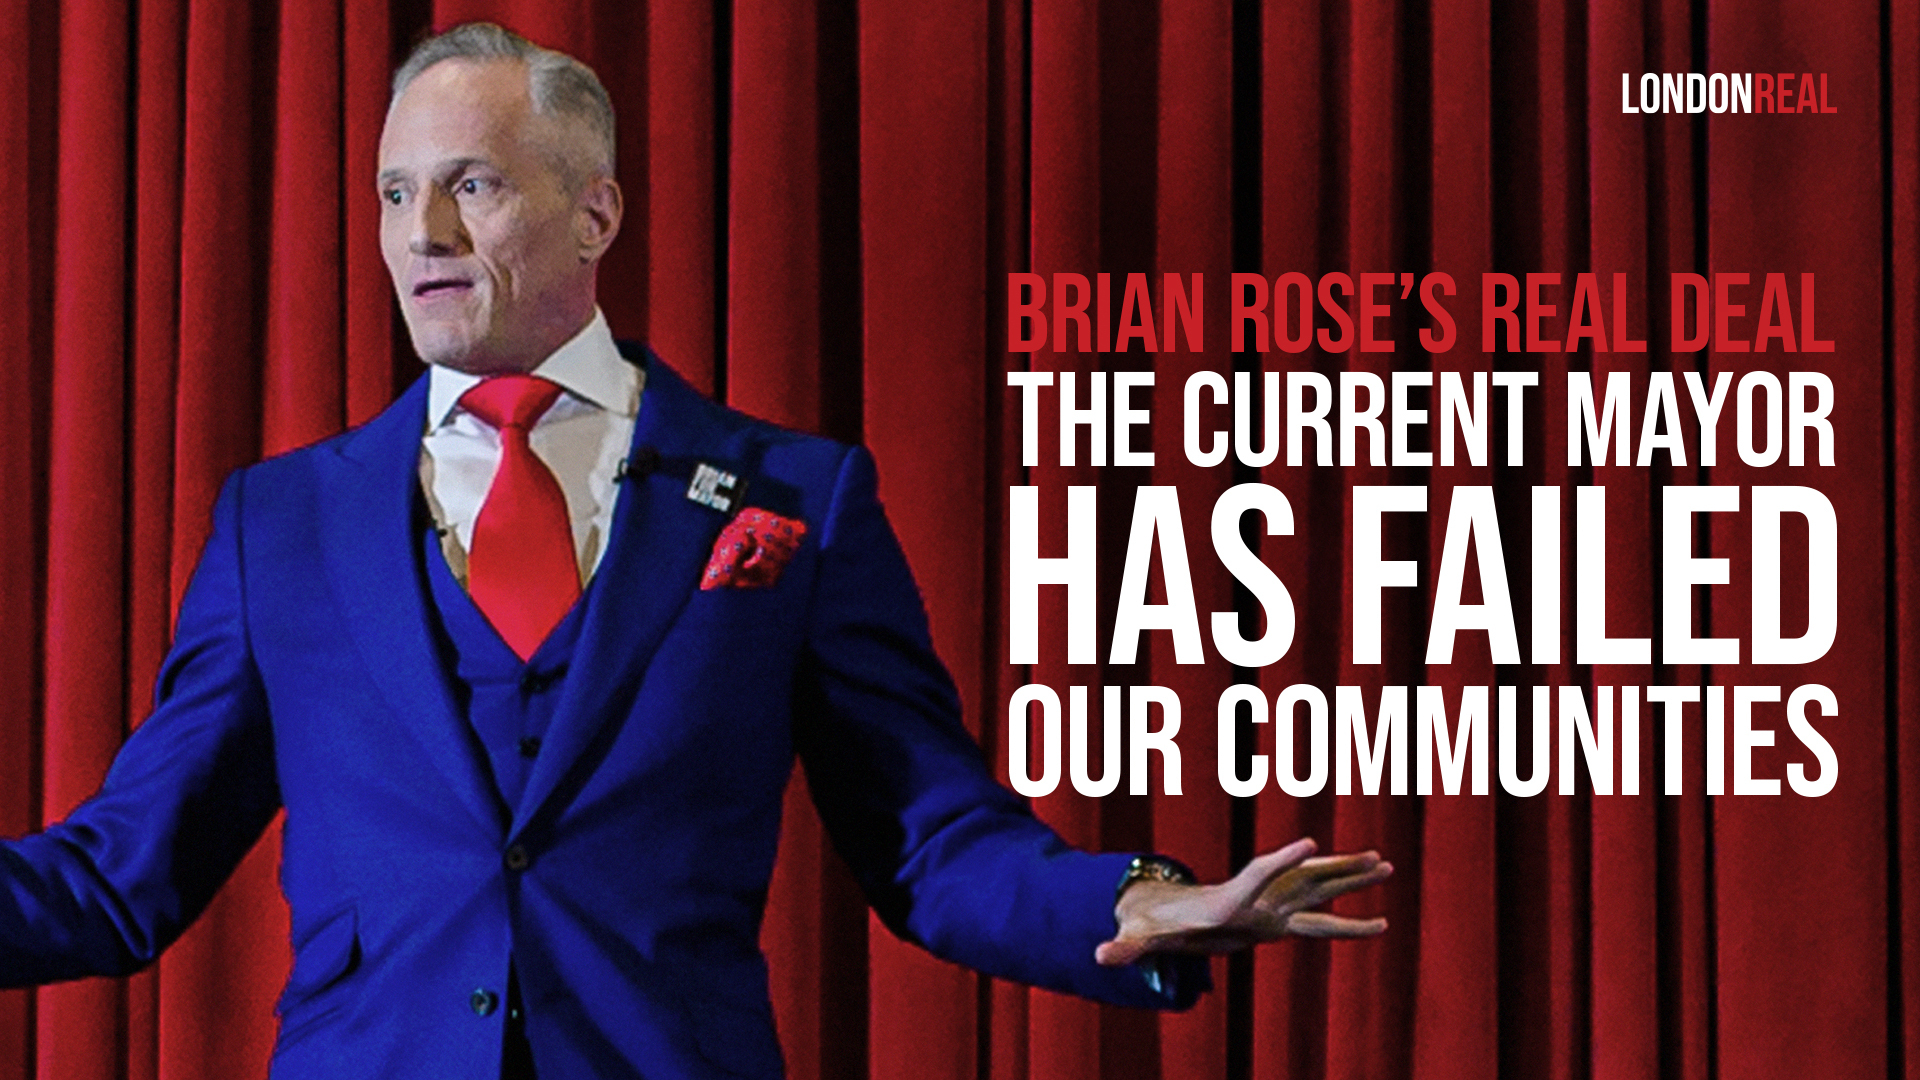 Brian Rose's Real Deal - Sadiq Khan Has Failed Our Communities & Younger Generation - How The Current Mayor Slashed Budgets & Broke His Promises